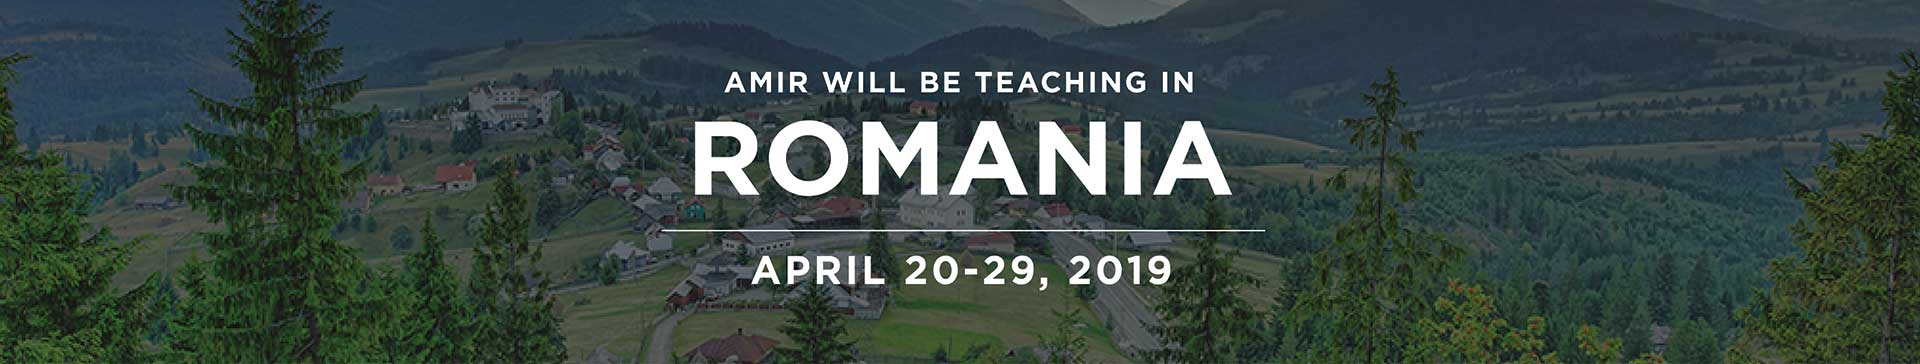 Romania Teaching Event - Behold Israel